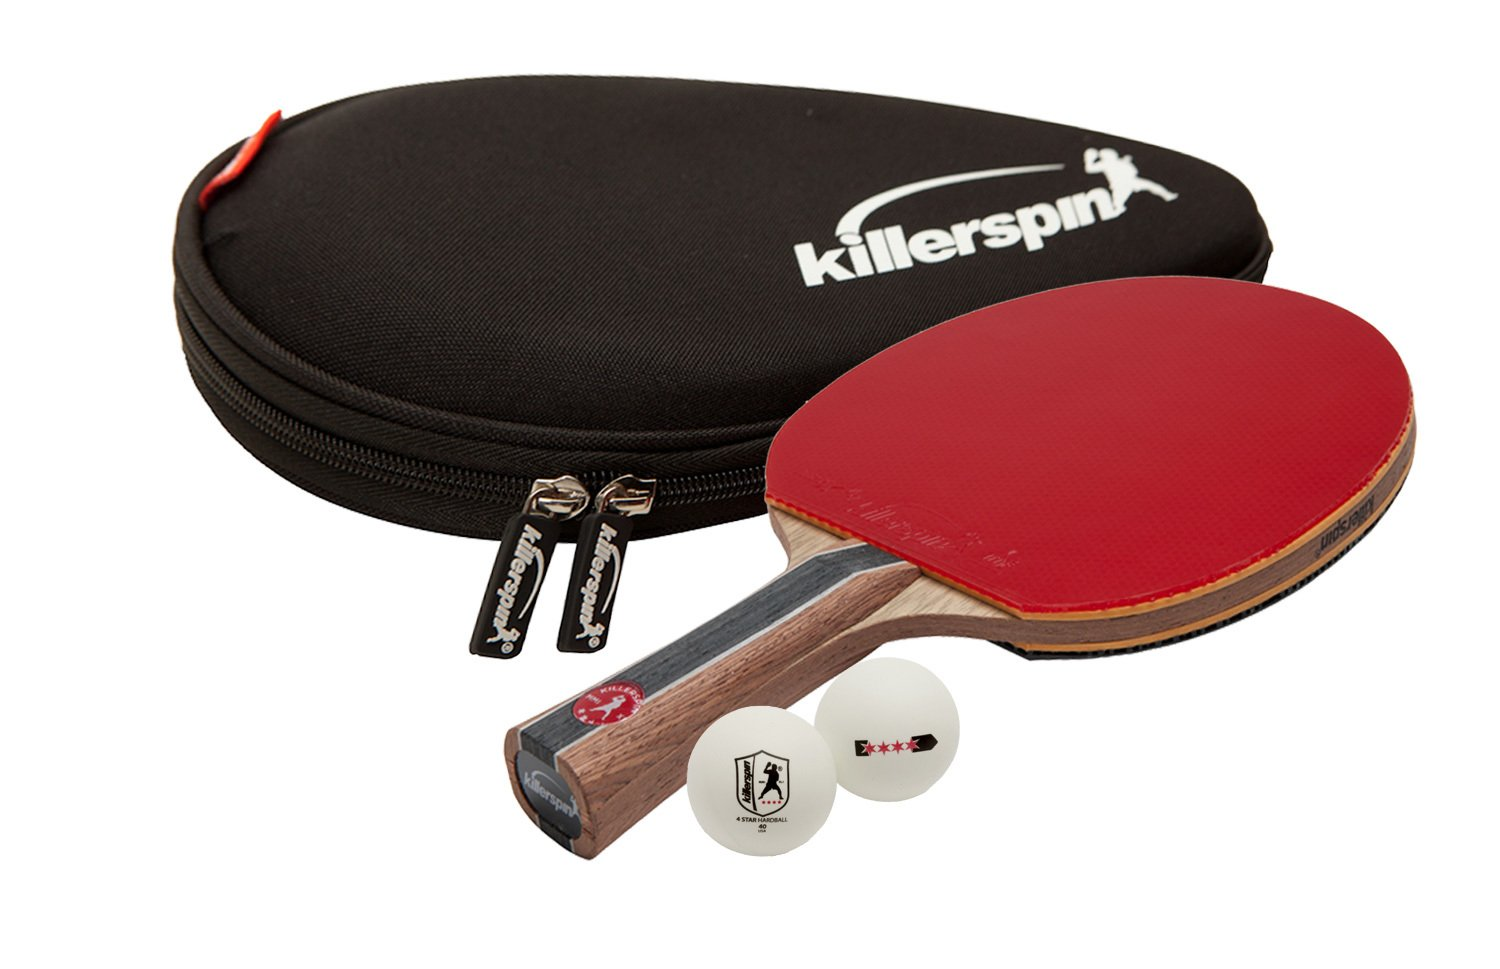 Killerspin Jet 800 Combo: Great Performing Paddle, Hard Racket Case and Three 4-Star Balls by Killerspin